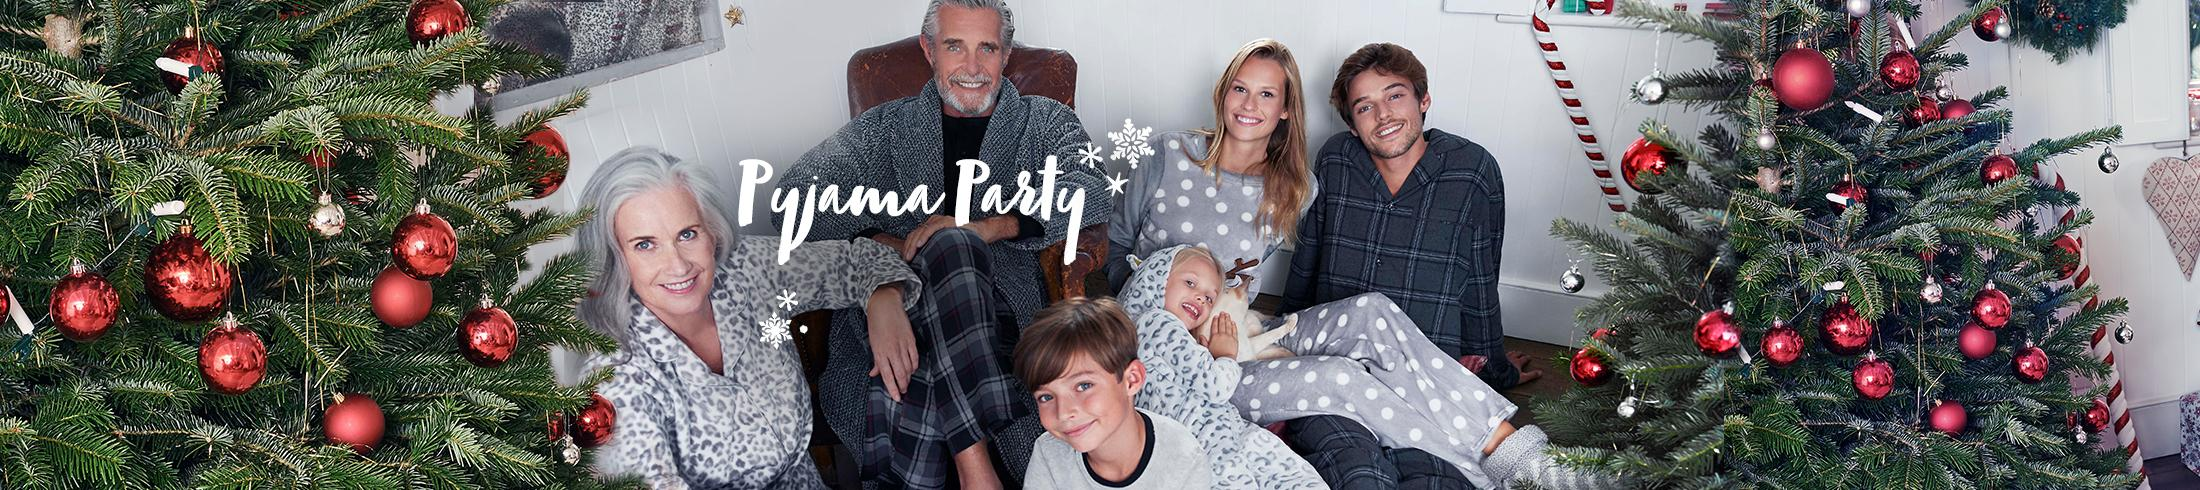 Cosy up this Christmas with our snug range of nightwear for all the family